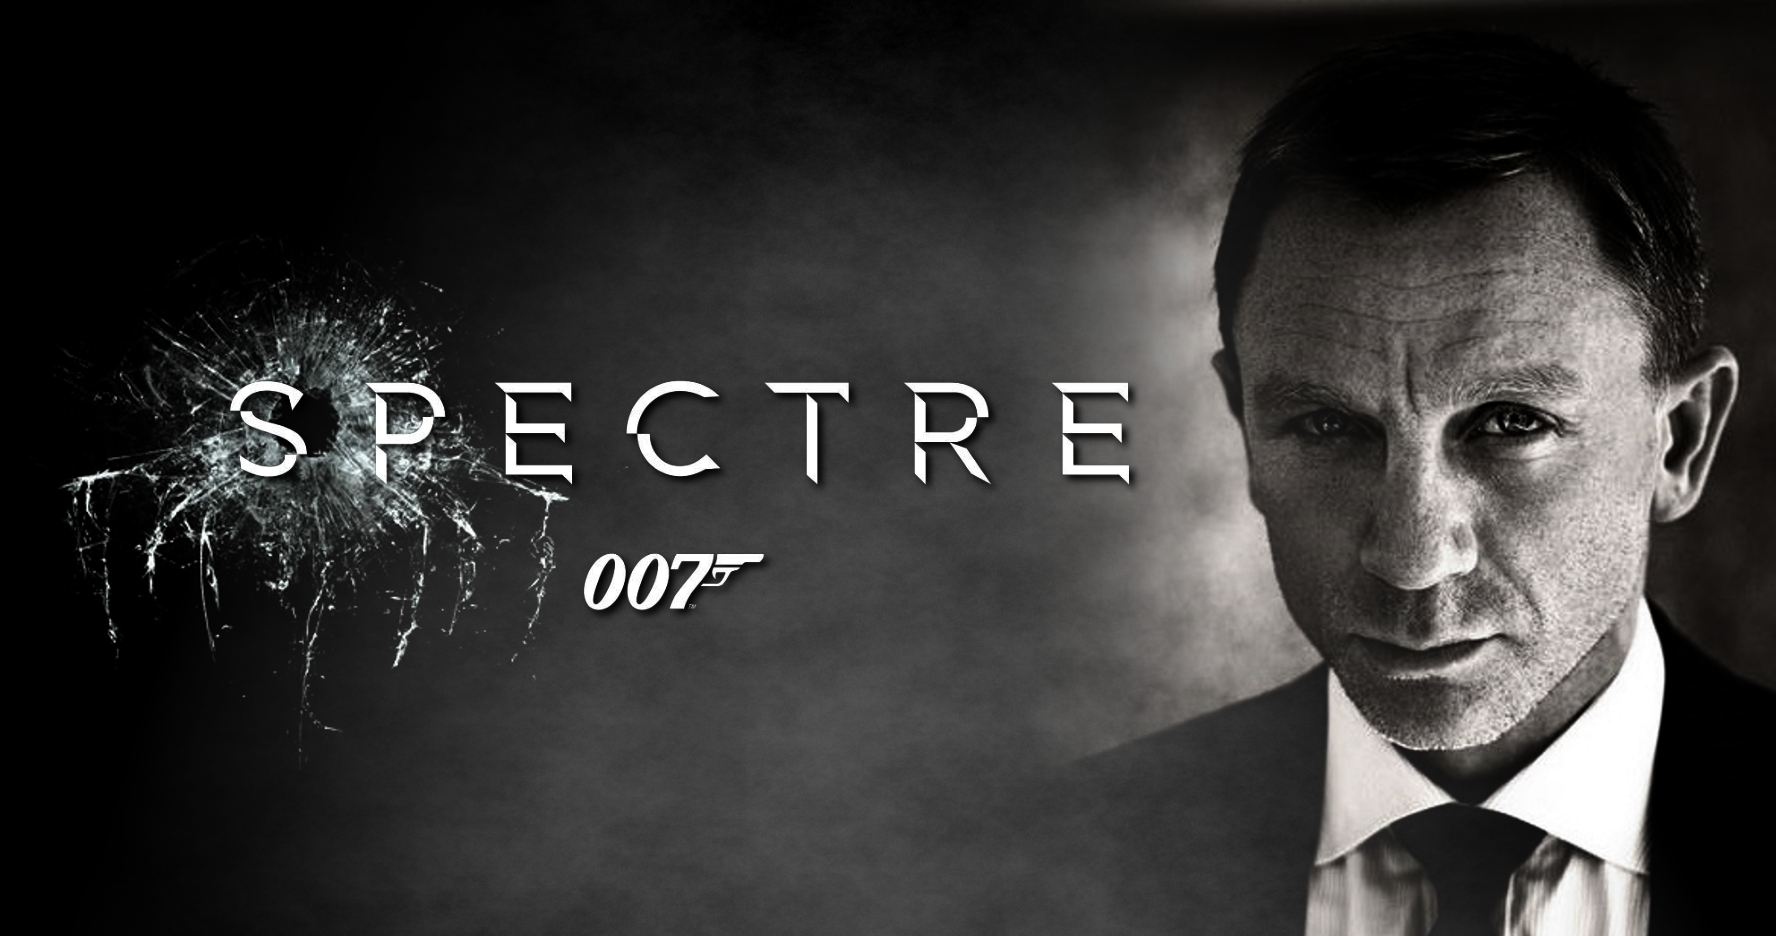 007 film casino royale streaming